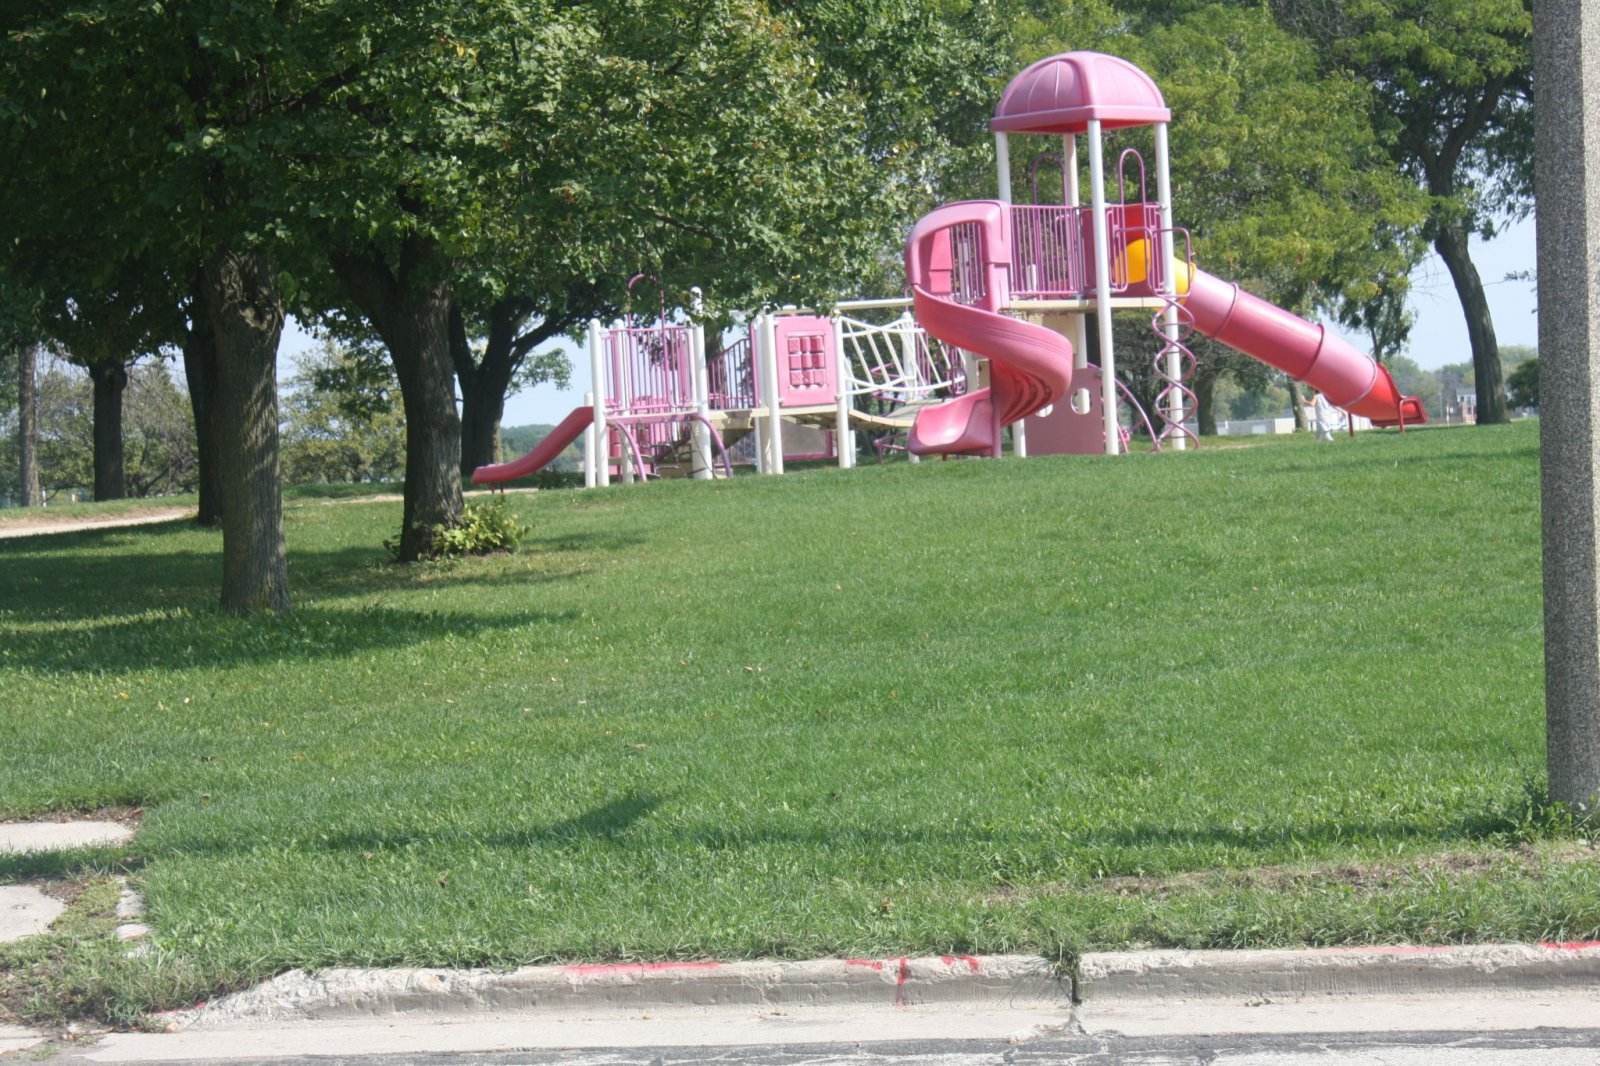 Playset at the end of Bottsford Avenue